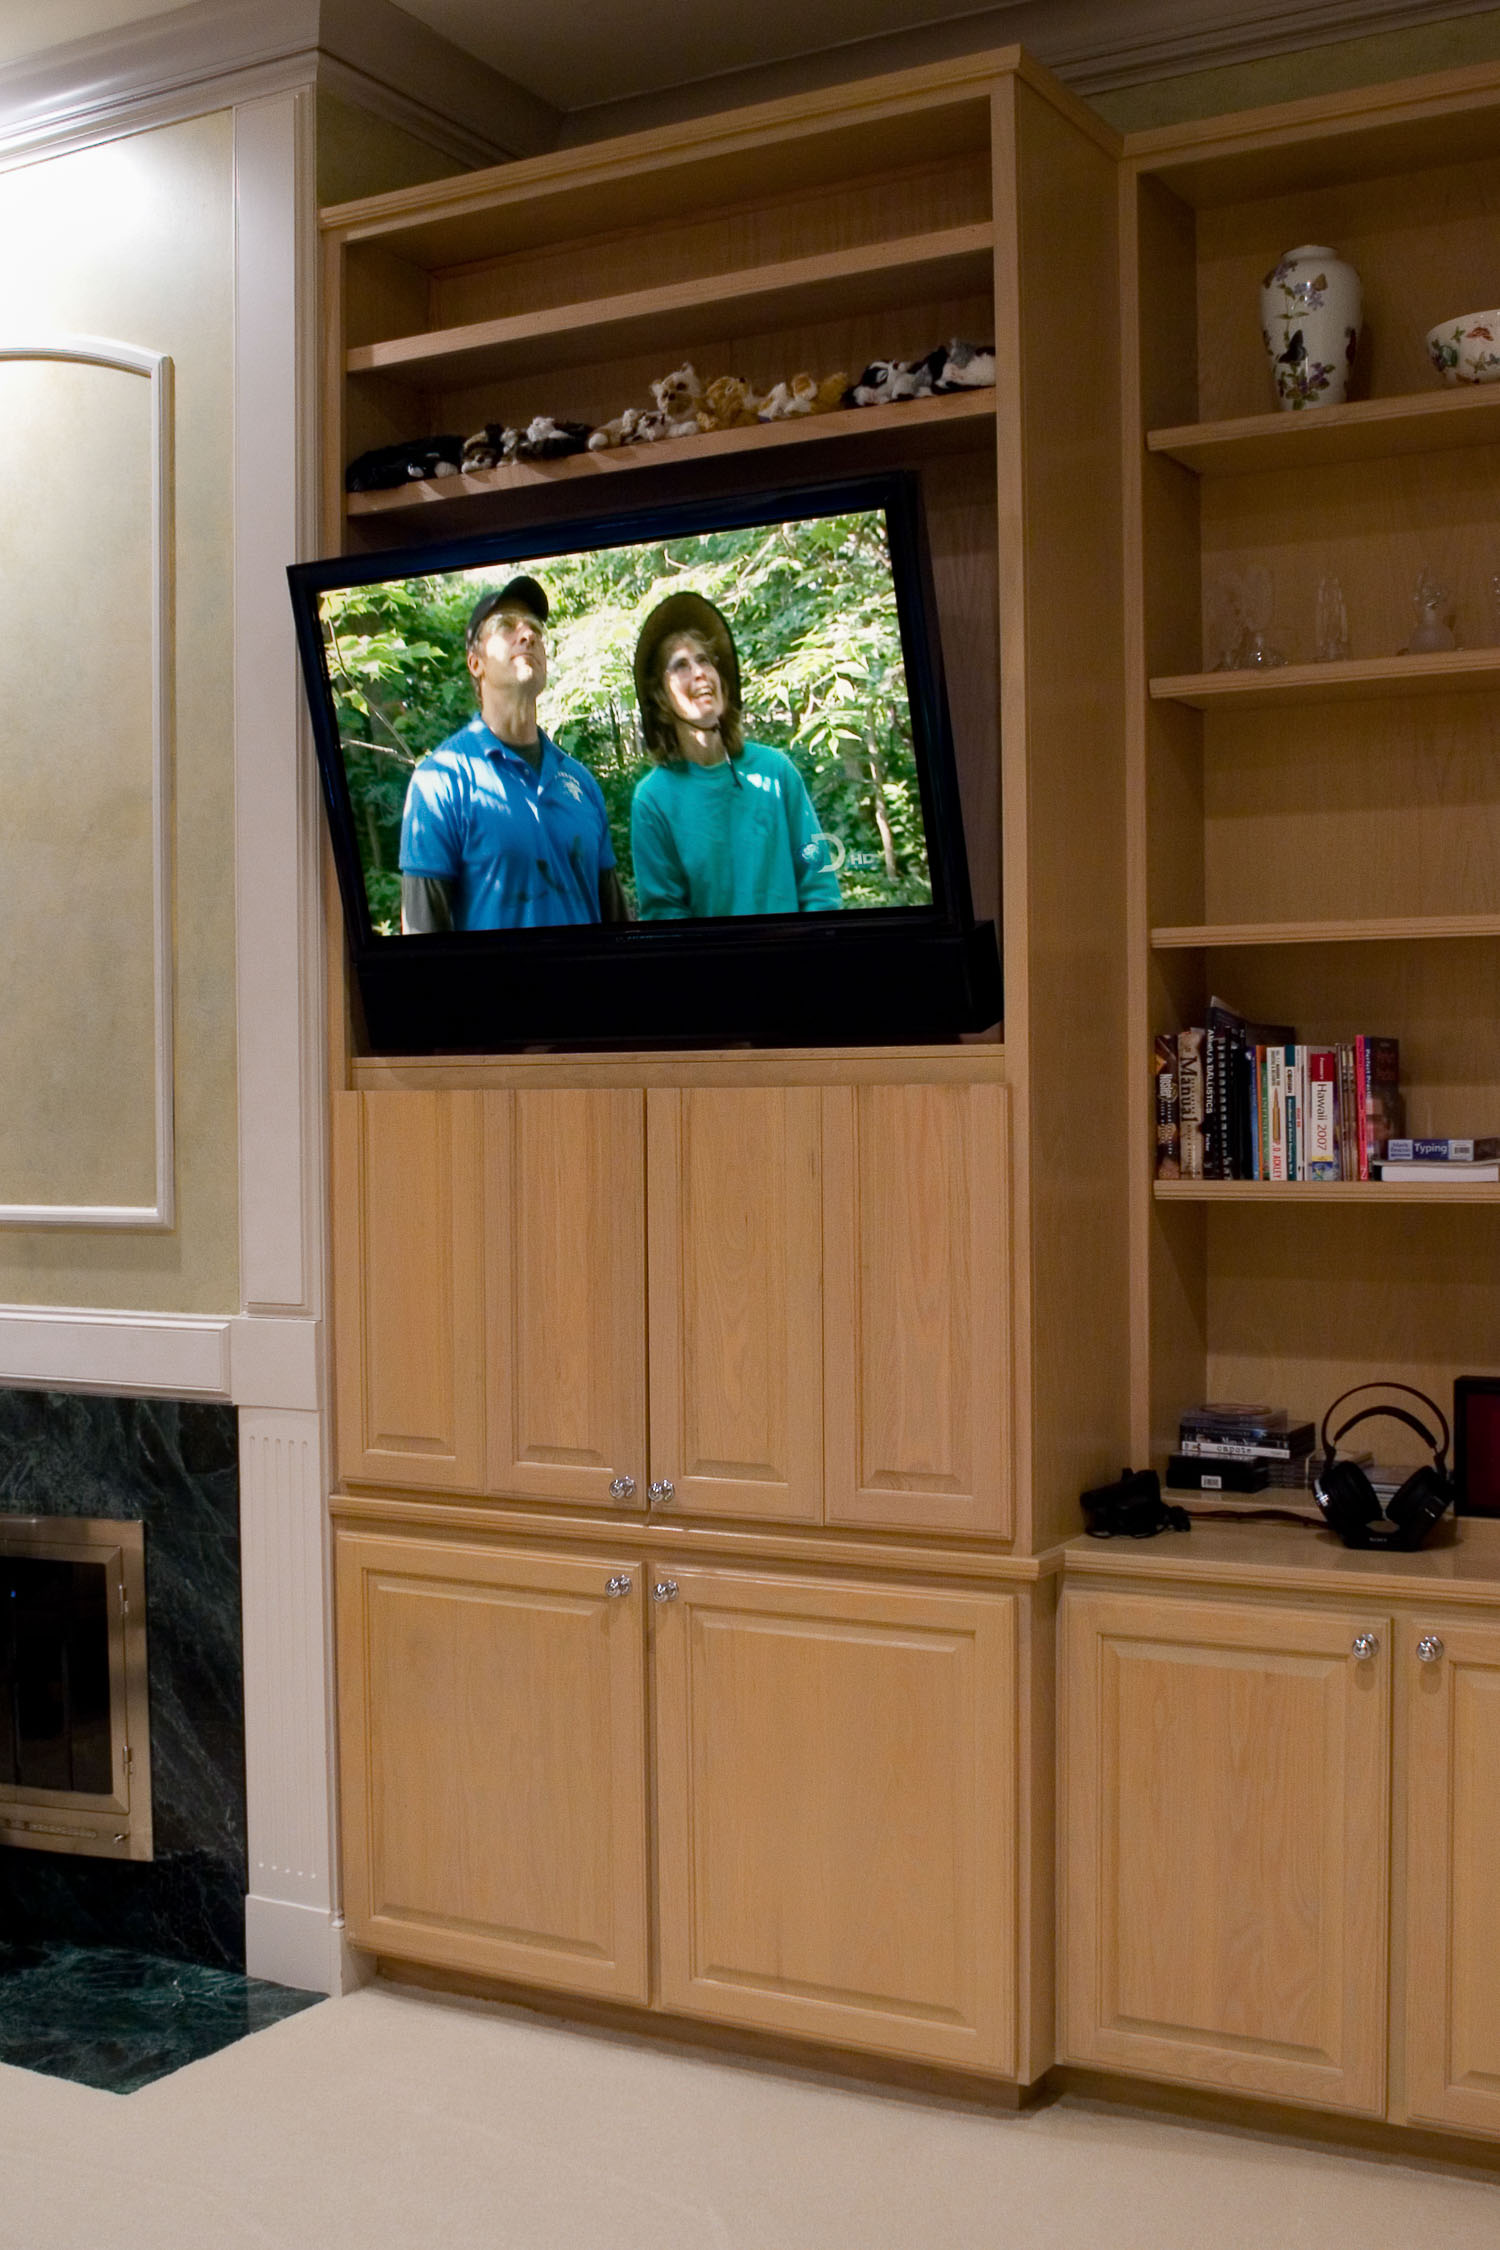 This flat-screen TV is mounted on an articulating arm that can be tilted and moved with a remote control.